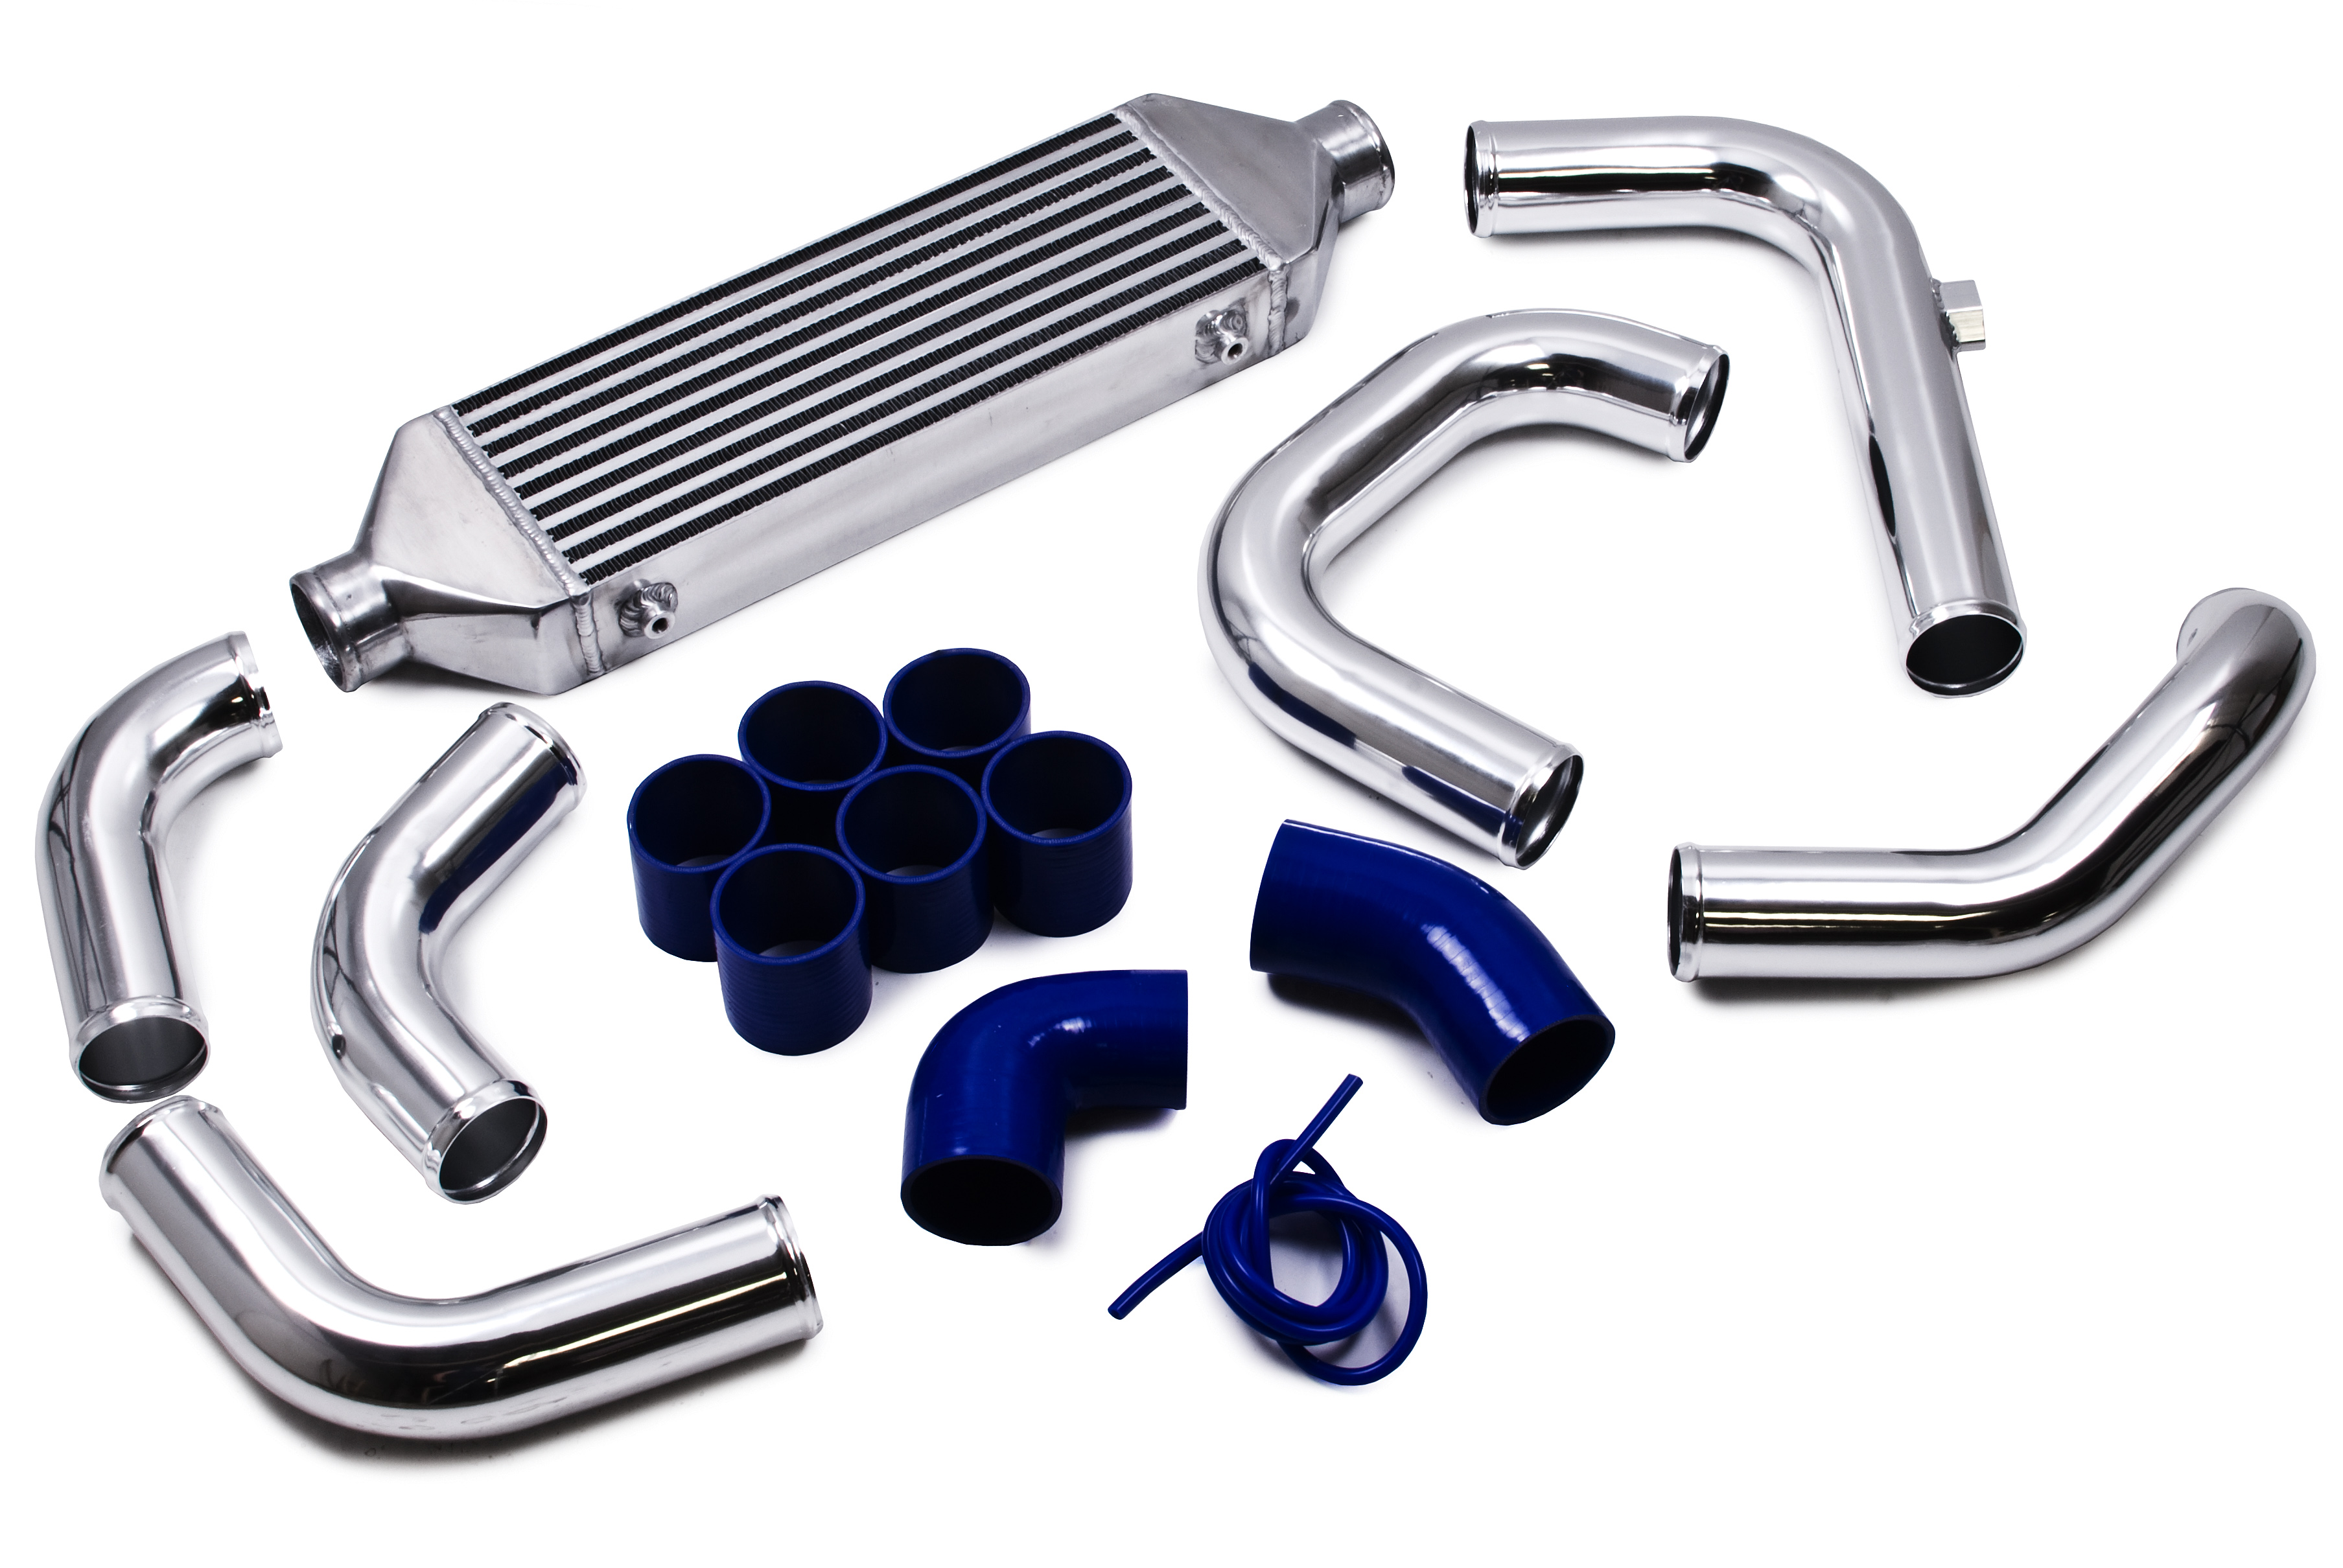 vw golf mk4 1 9tdi front mount turbo intercooler kit ebay. Black Bedroom Furniture Sets. Home Design Ideas